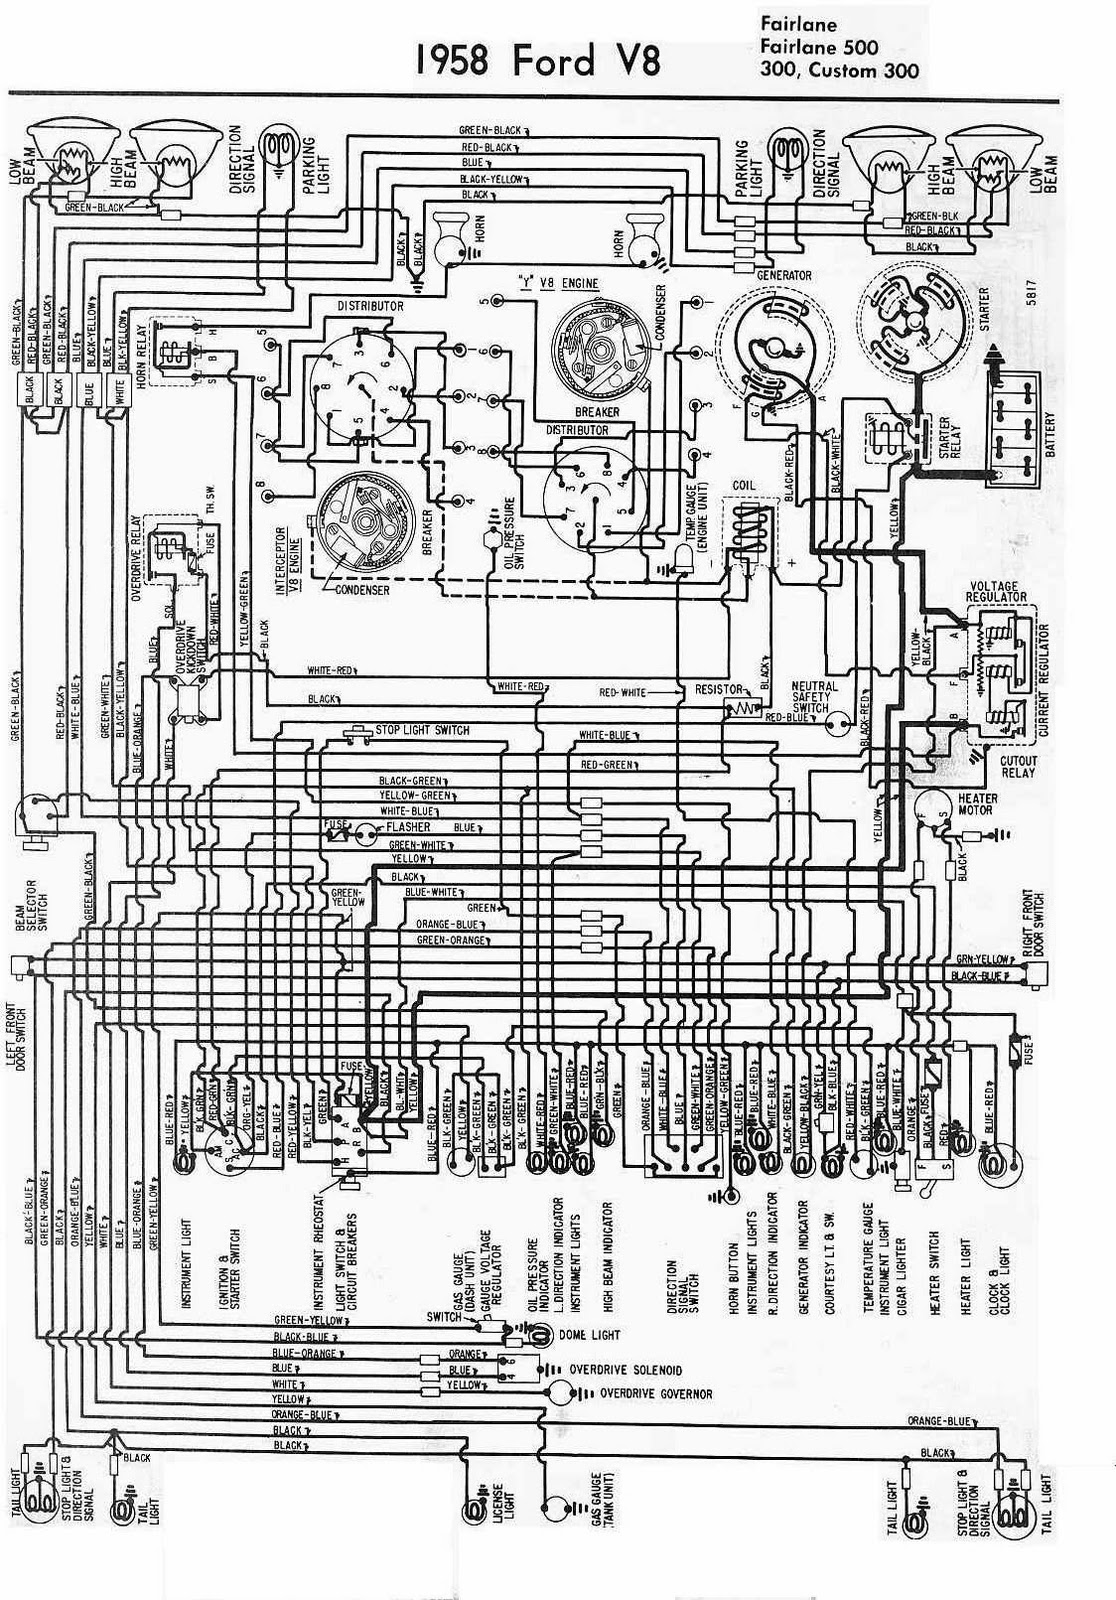 1955 ford fairlane wiring diagram generator wiring diagram g8 1968 F100 Wiring Harness 1955 ford fairlane wiring diagram generator wiring library diagram h9 1957 ford fairlane wiring diagram 1955 ford fairlane wiring diagram generator